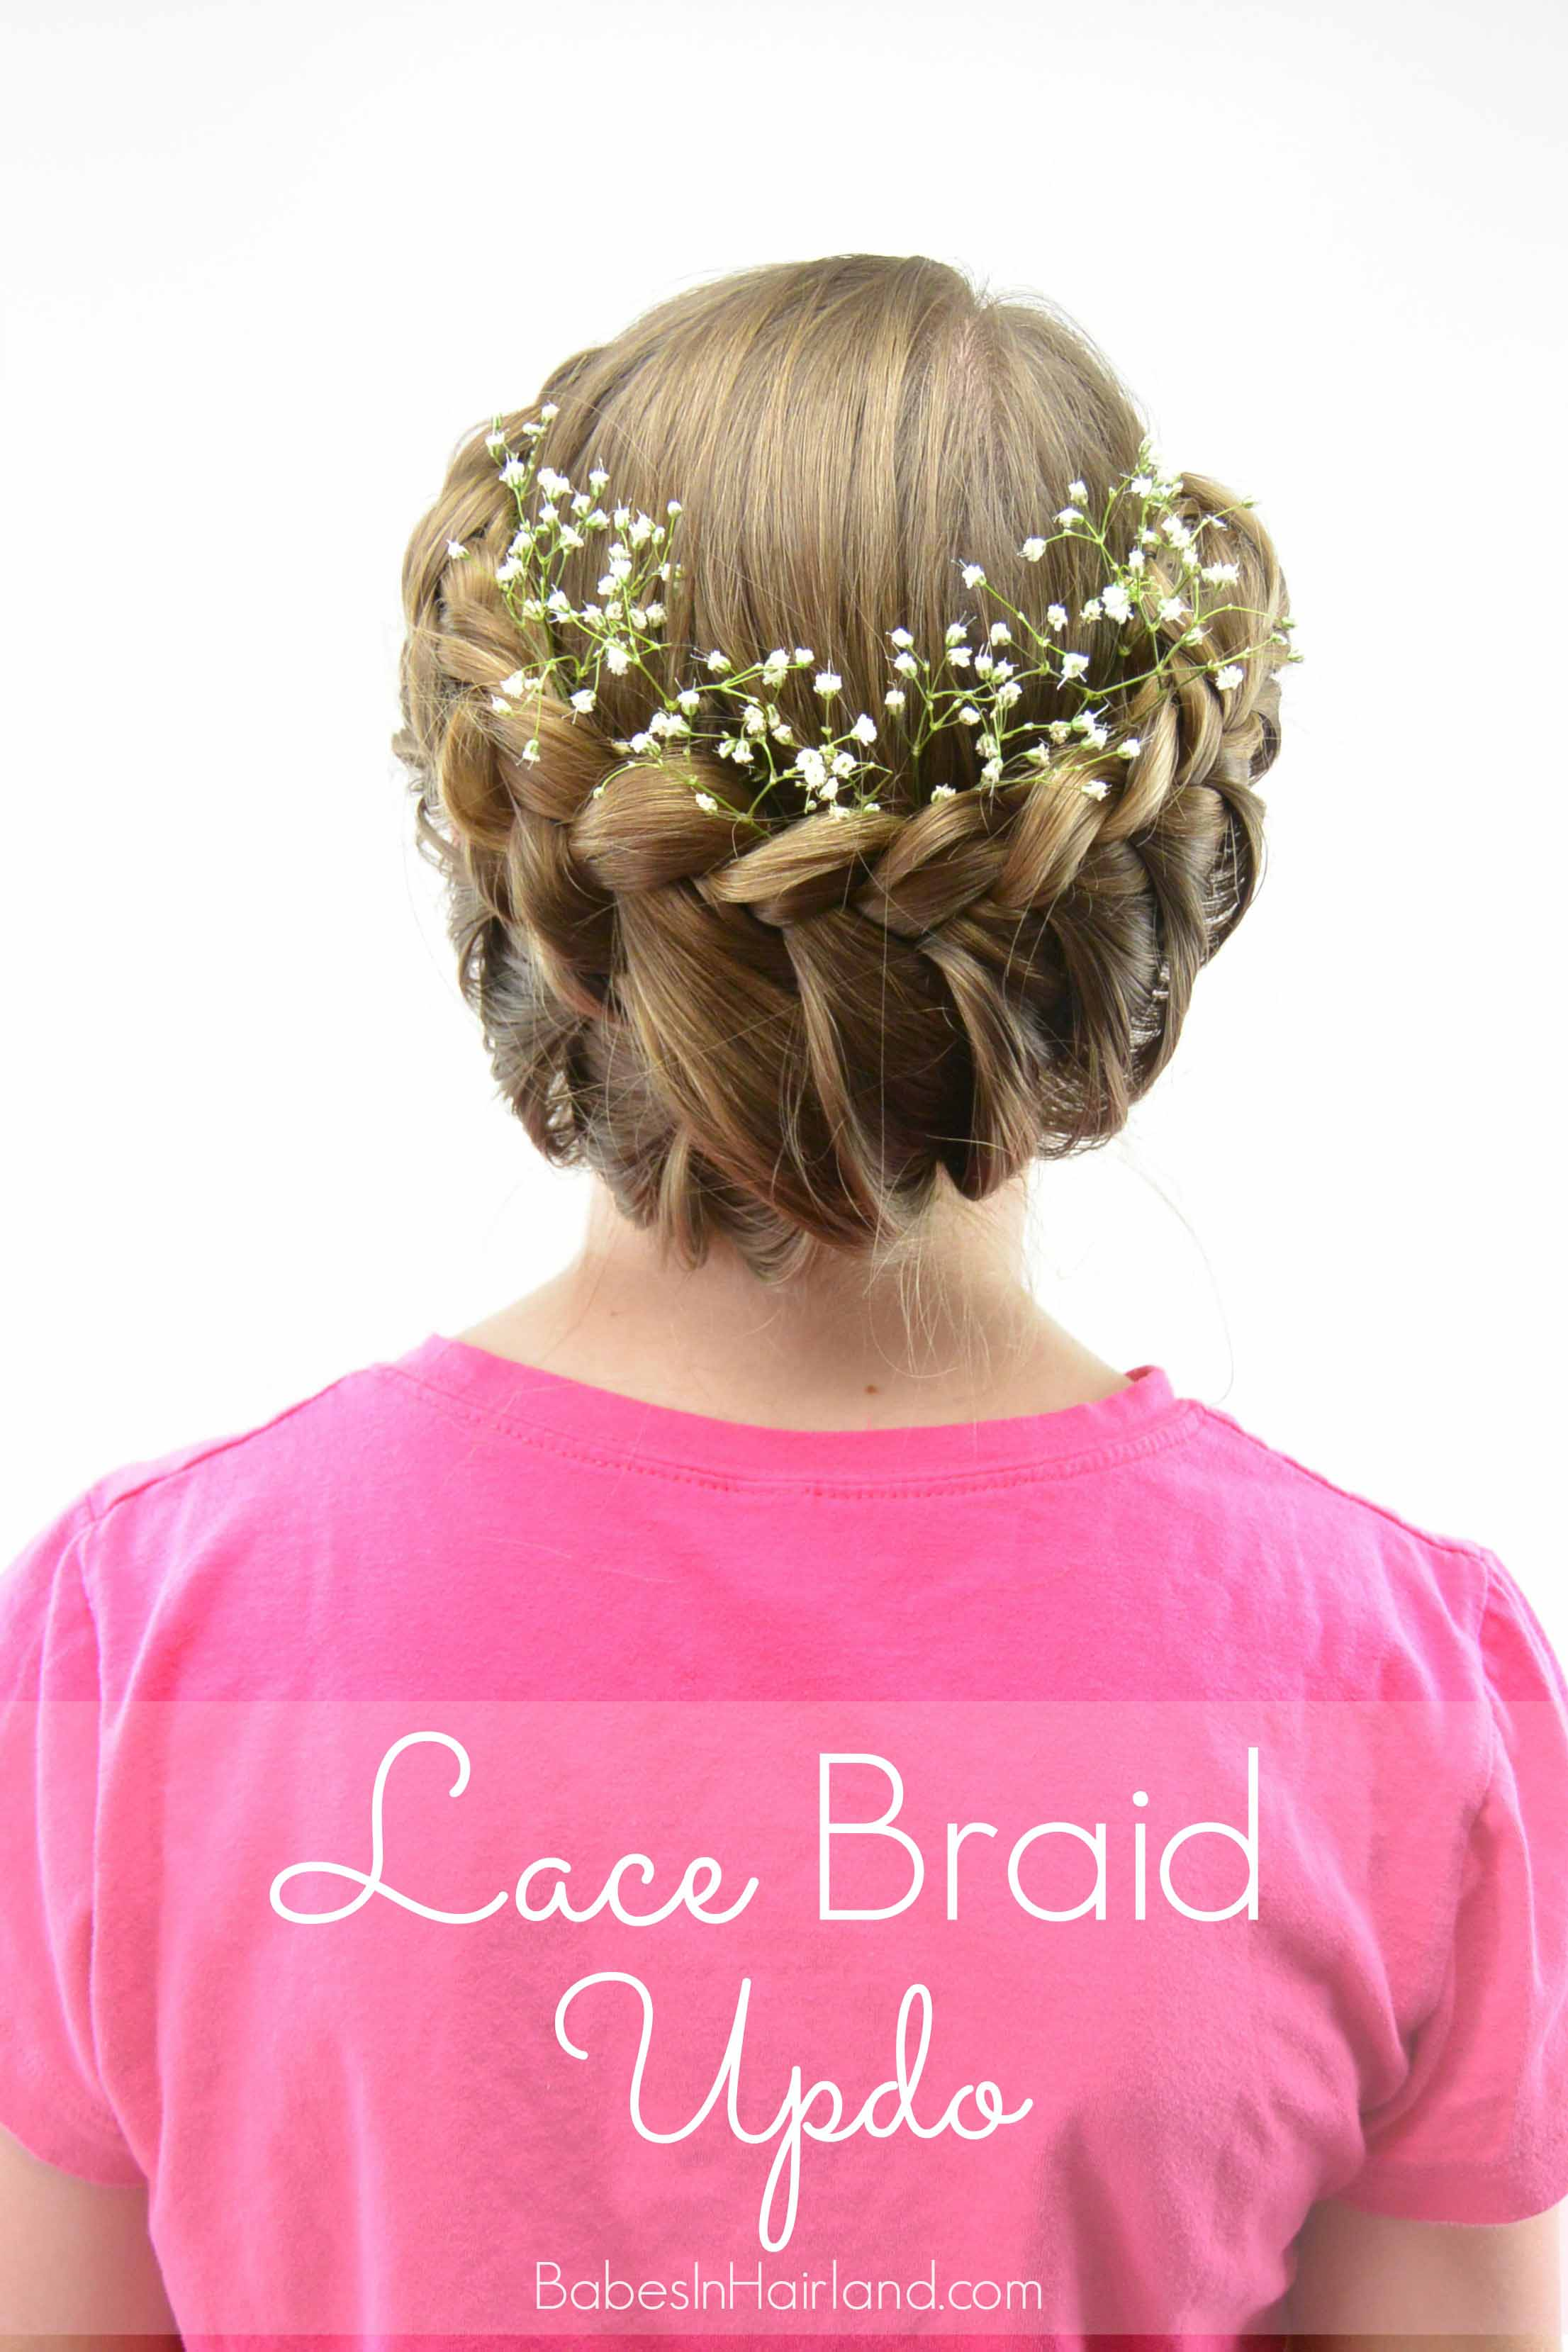 Easy Twisted Updo | Prom & Wedding Hairstyle | BabesInHairland.com